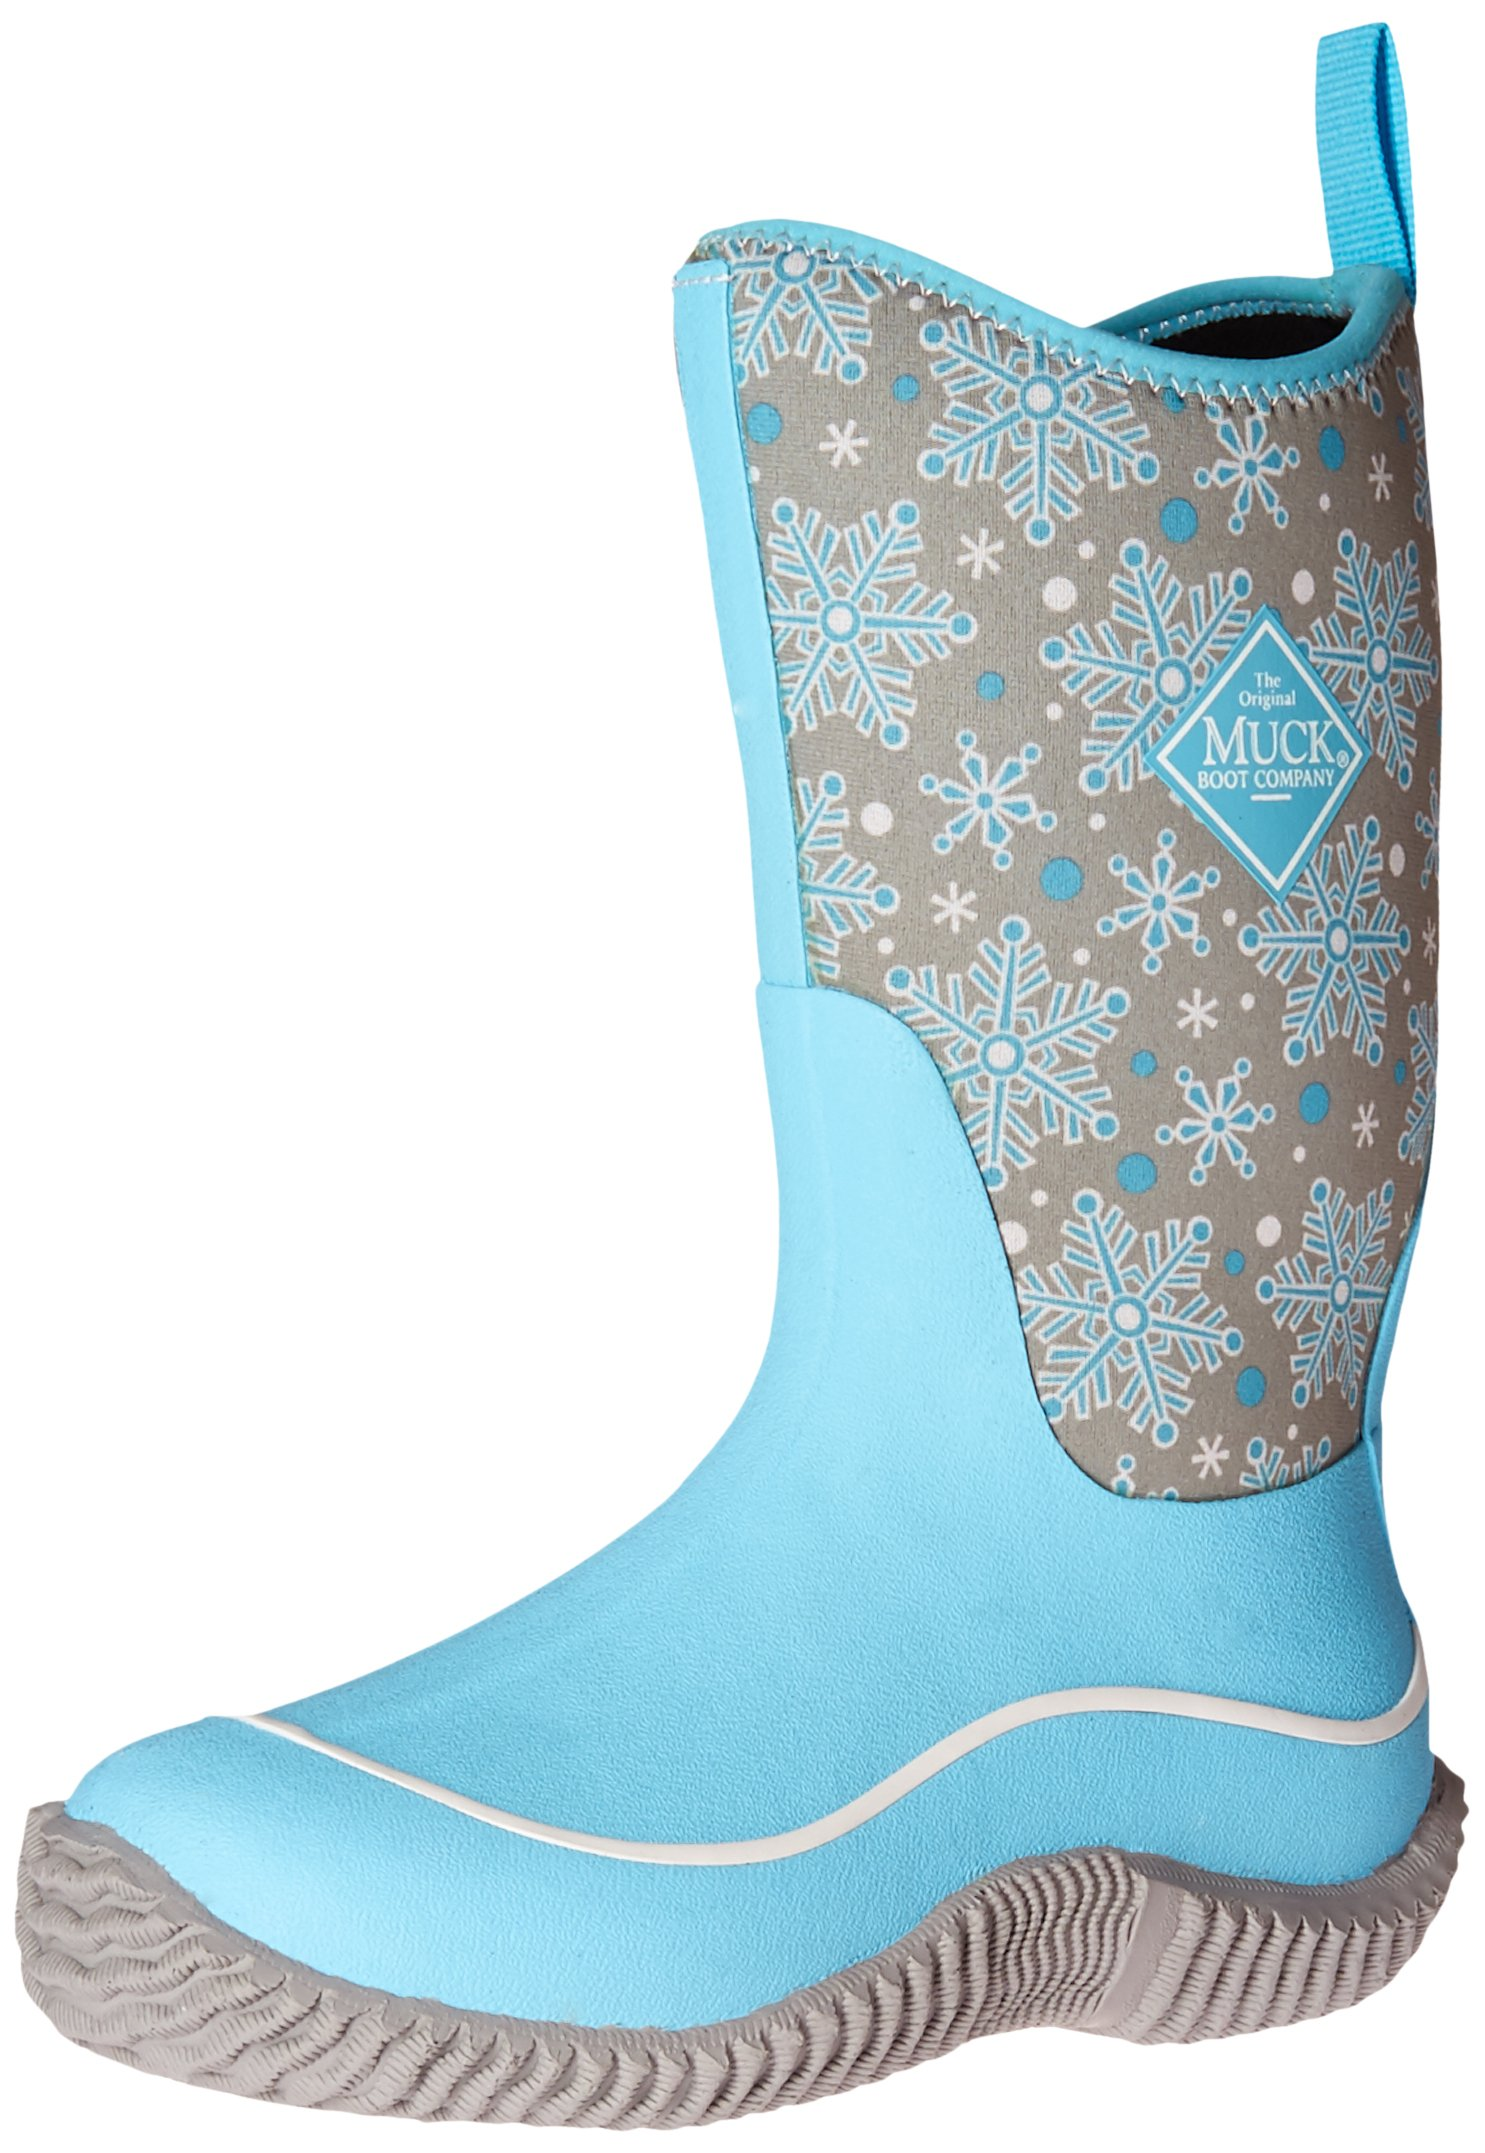 Muck Boot Kids' Hale Pull-on Boot, Blue Snowflake, 7 M US Toddler by Muck Boot